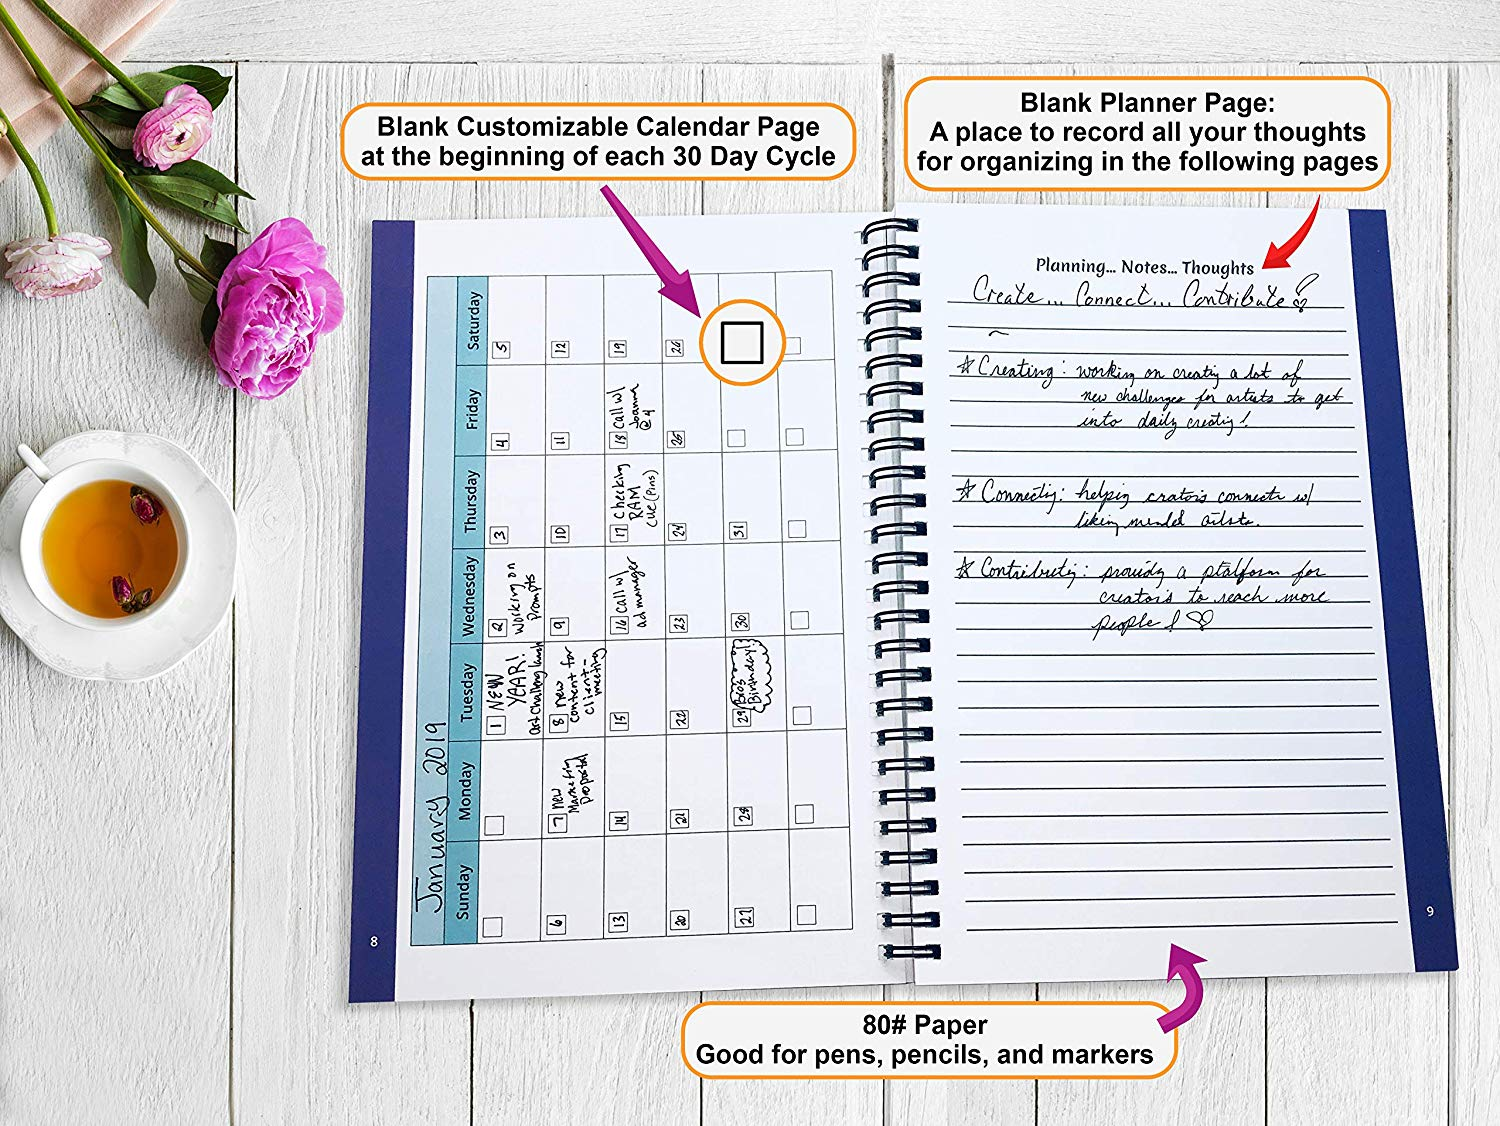 Calander & Notes Pages: These pages are added at the beginning of each month during the 90 Day Goals process. #GoalJournal #GoalPlanner #BestSelf #90DayJournals #90DayGoals #AchieveYourGoals